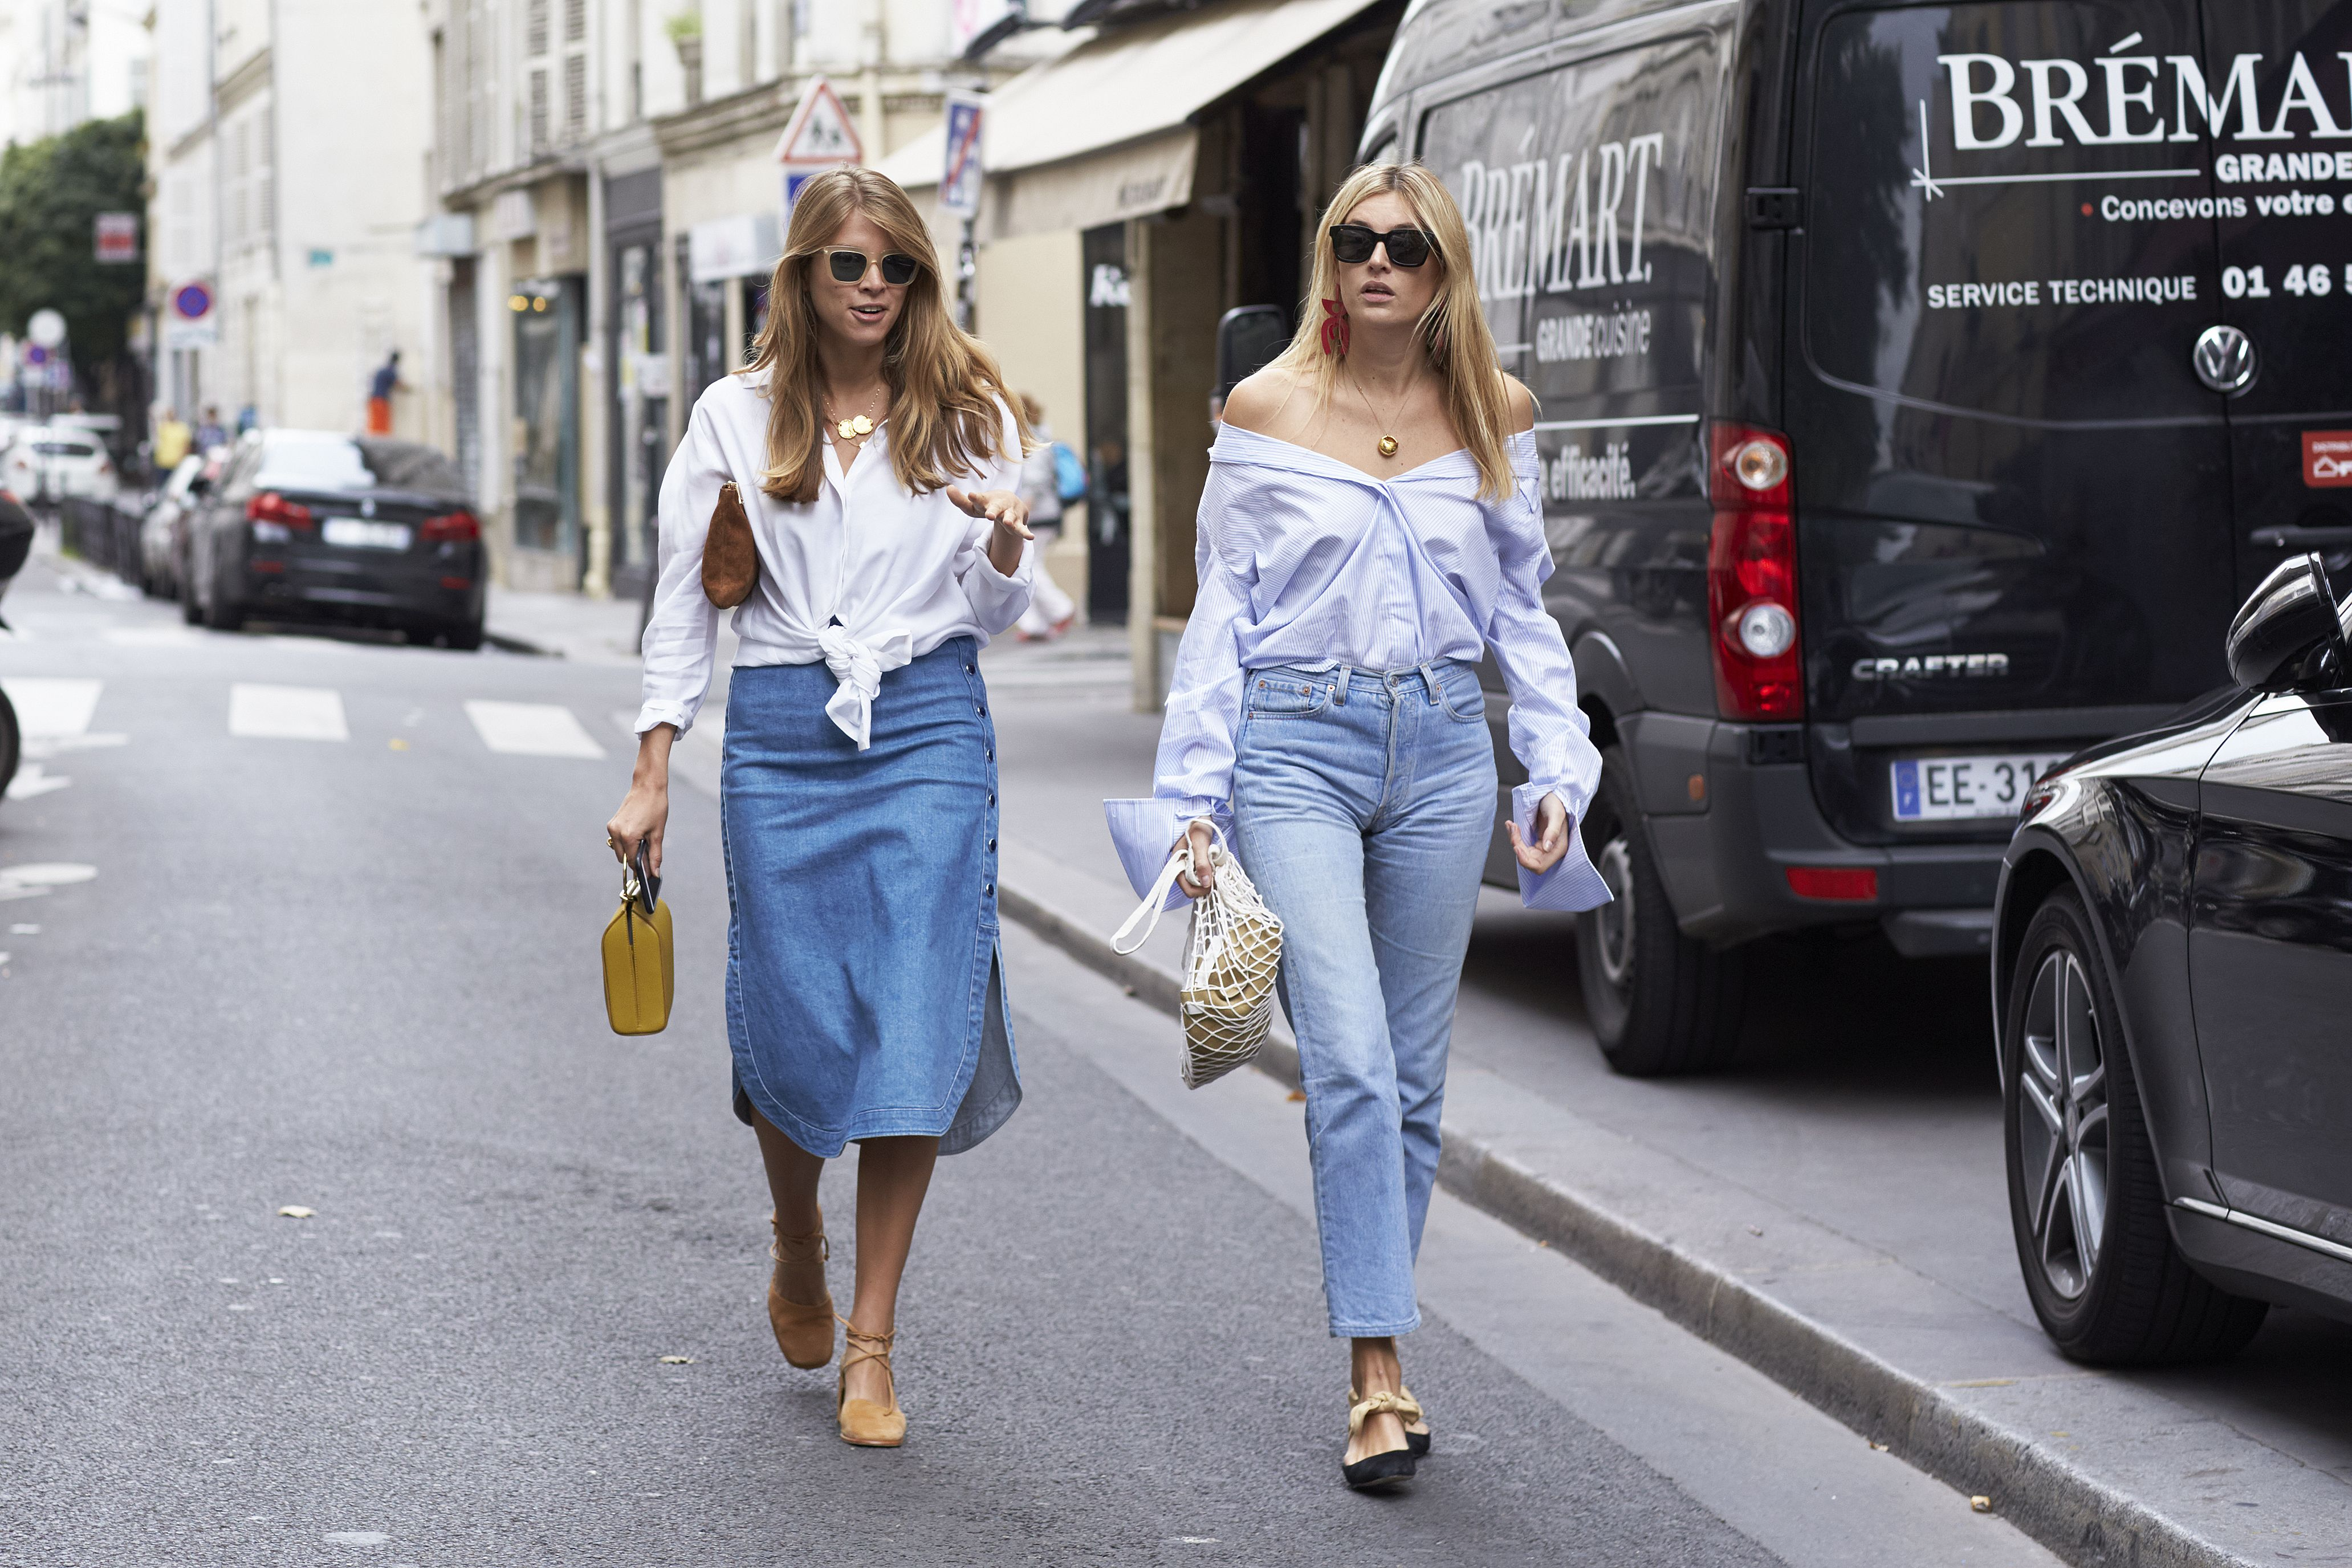 Street style stars Monica Ainley and Camille Charriere wearing sexy summer tops at Paris Fashion Week.